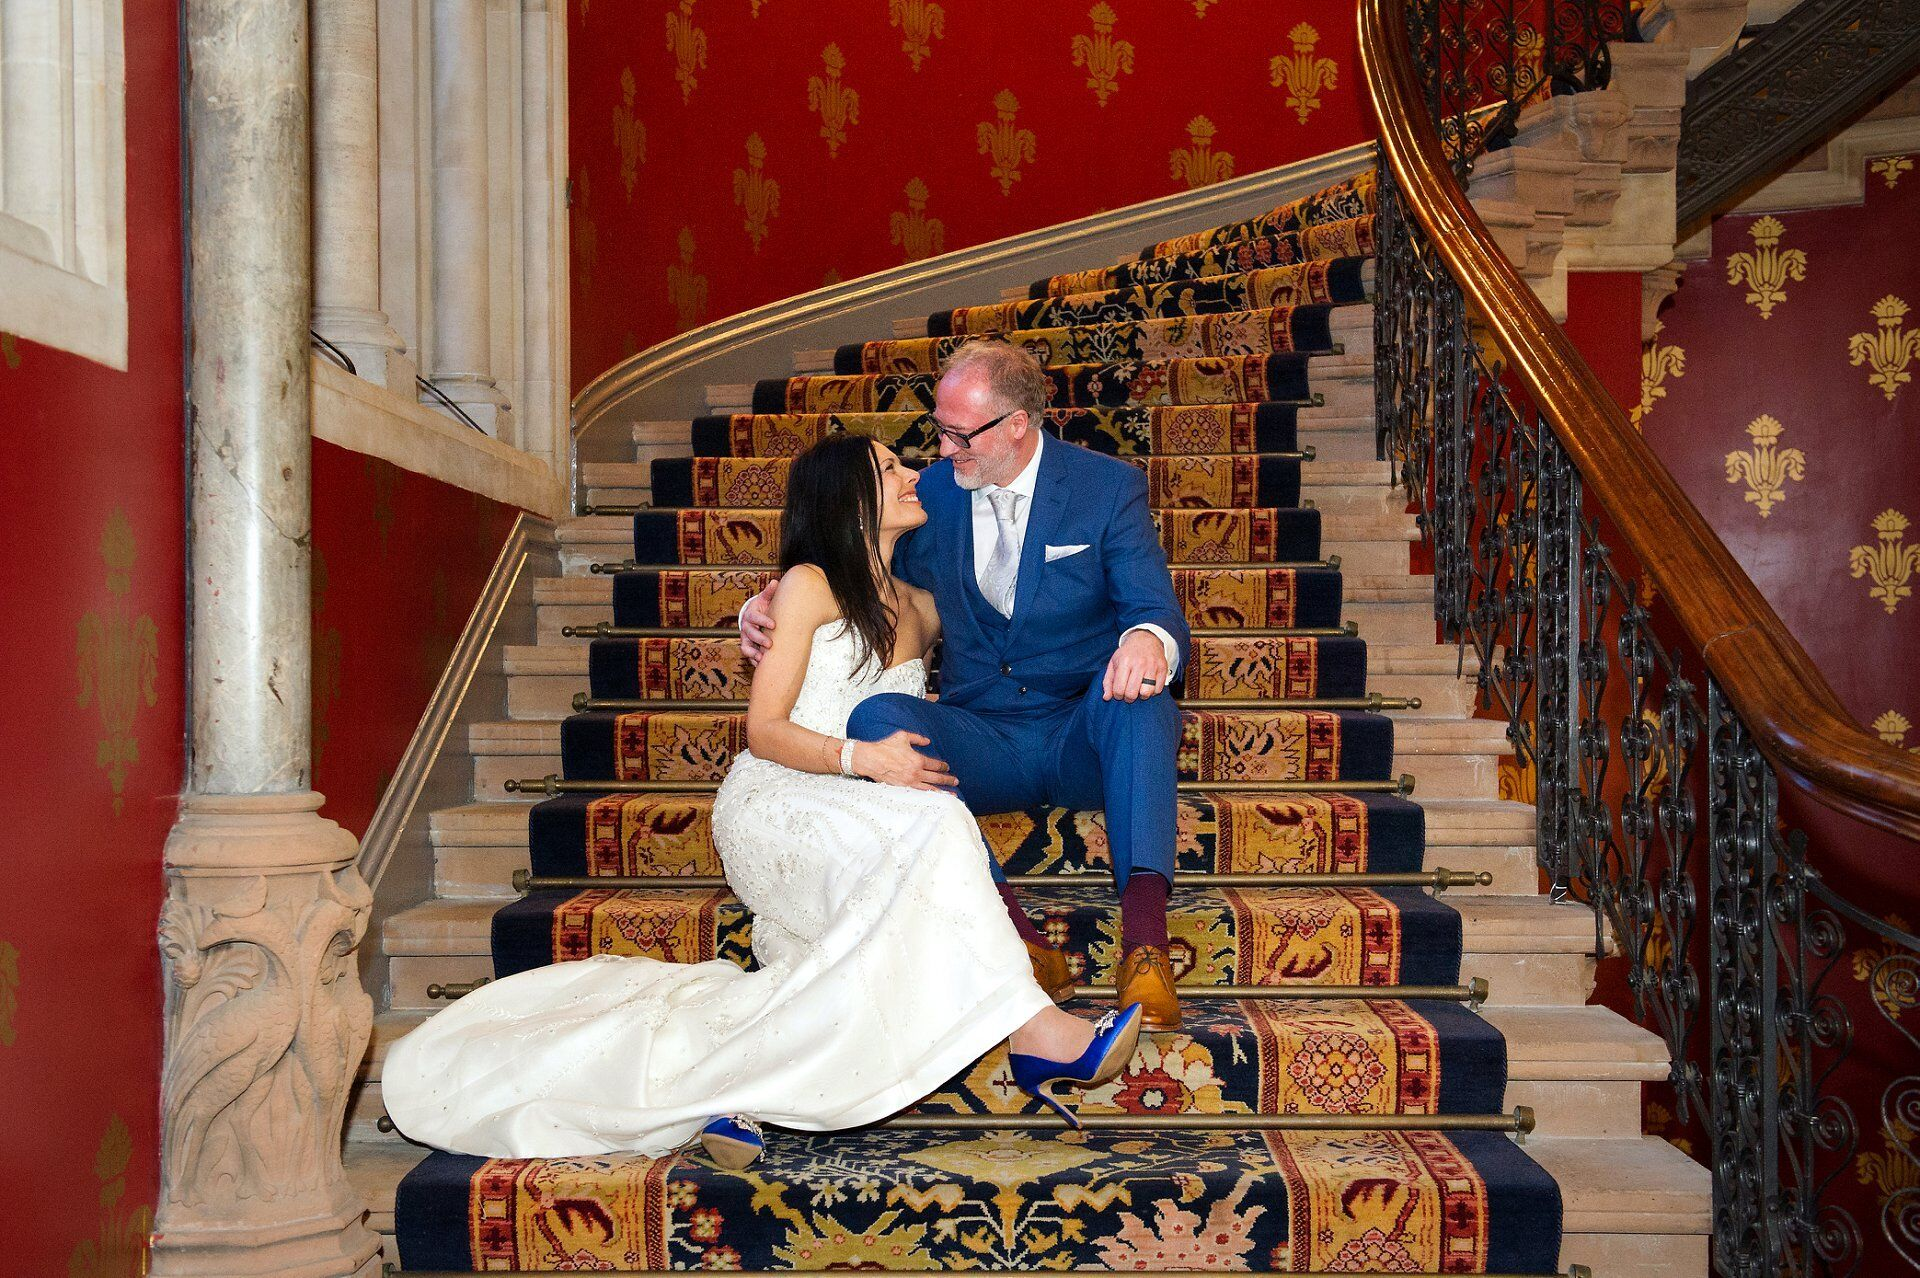 st pancras renaissance wedding photographer bride and groom on famous grand staircase after their chelsea wedding